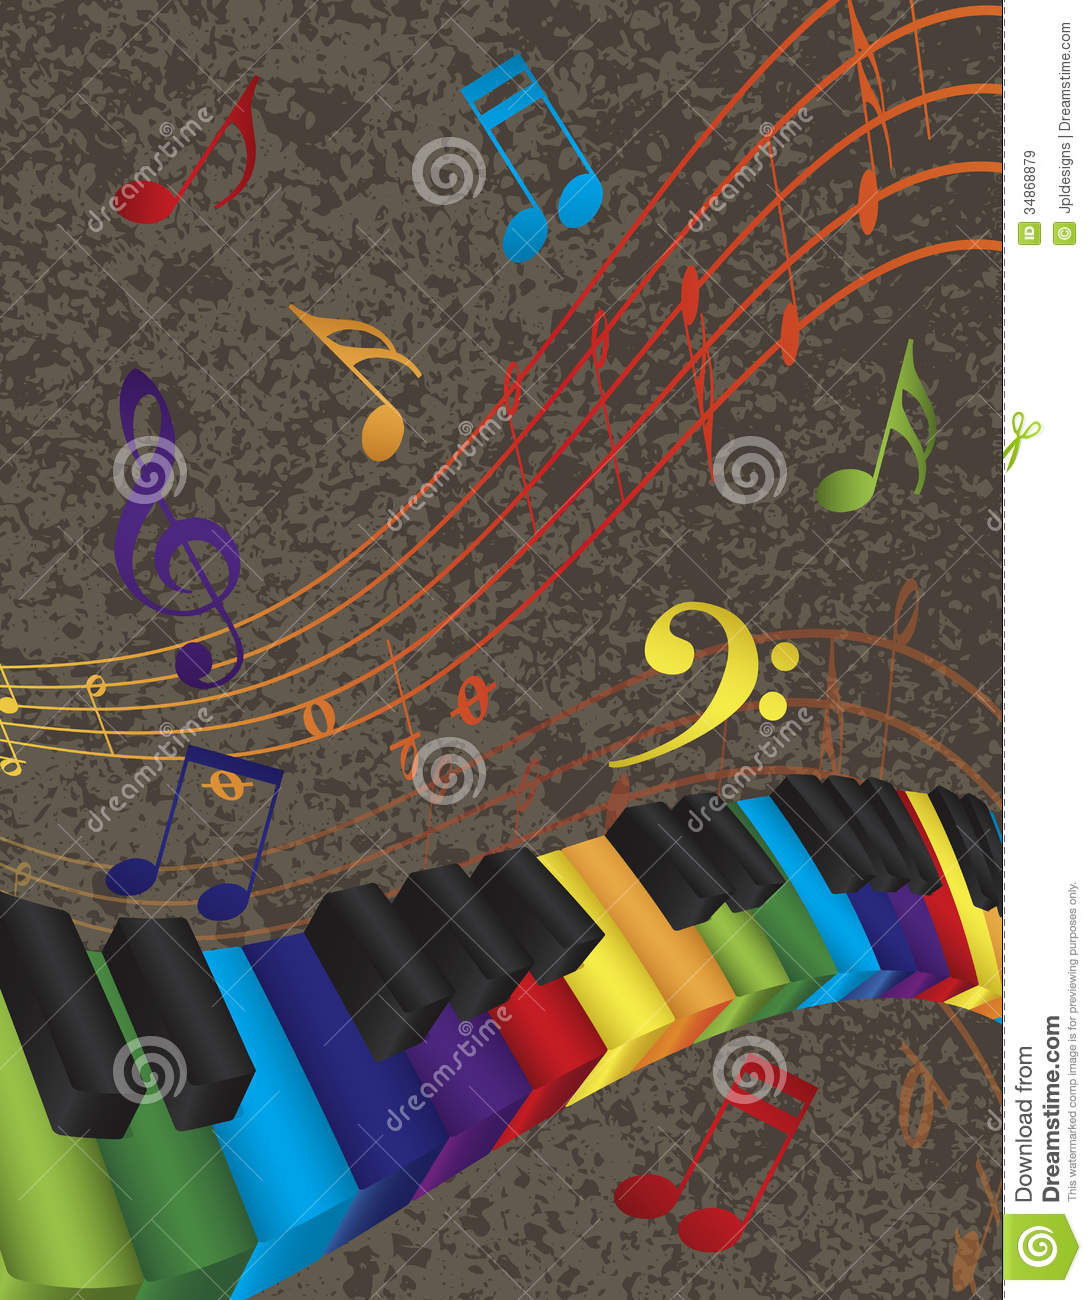 Piano Wavy Border With 3D Colorful Keys And Music